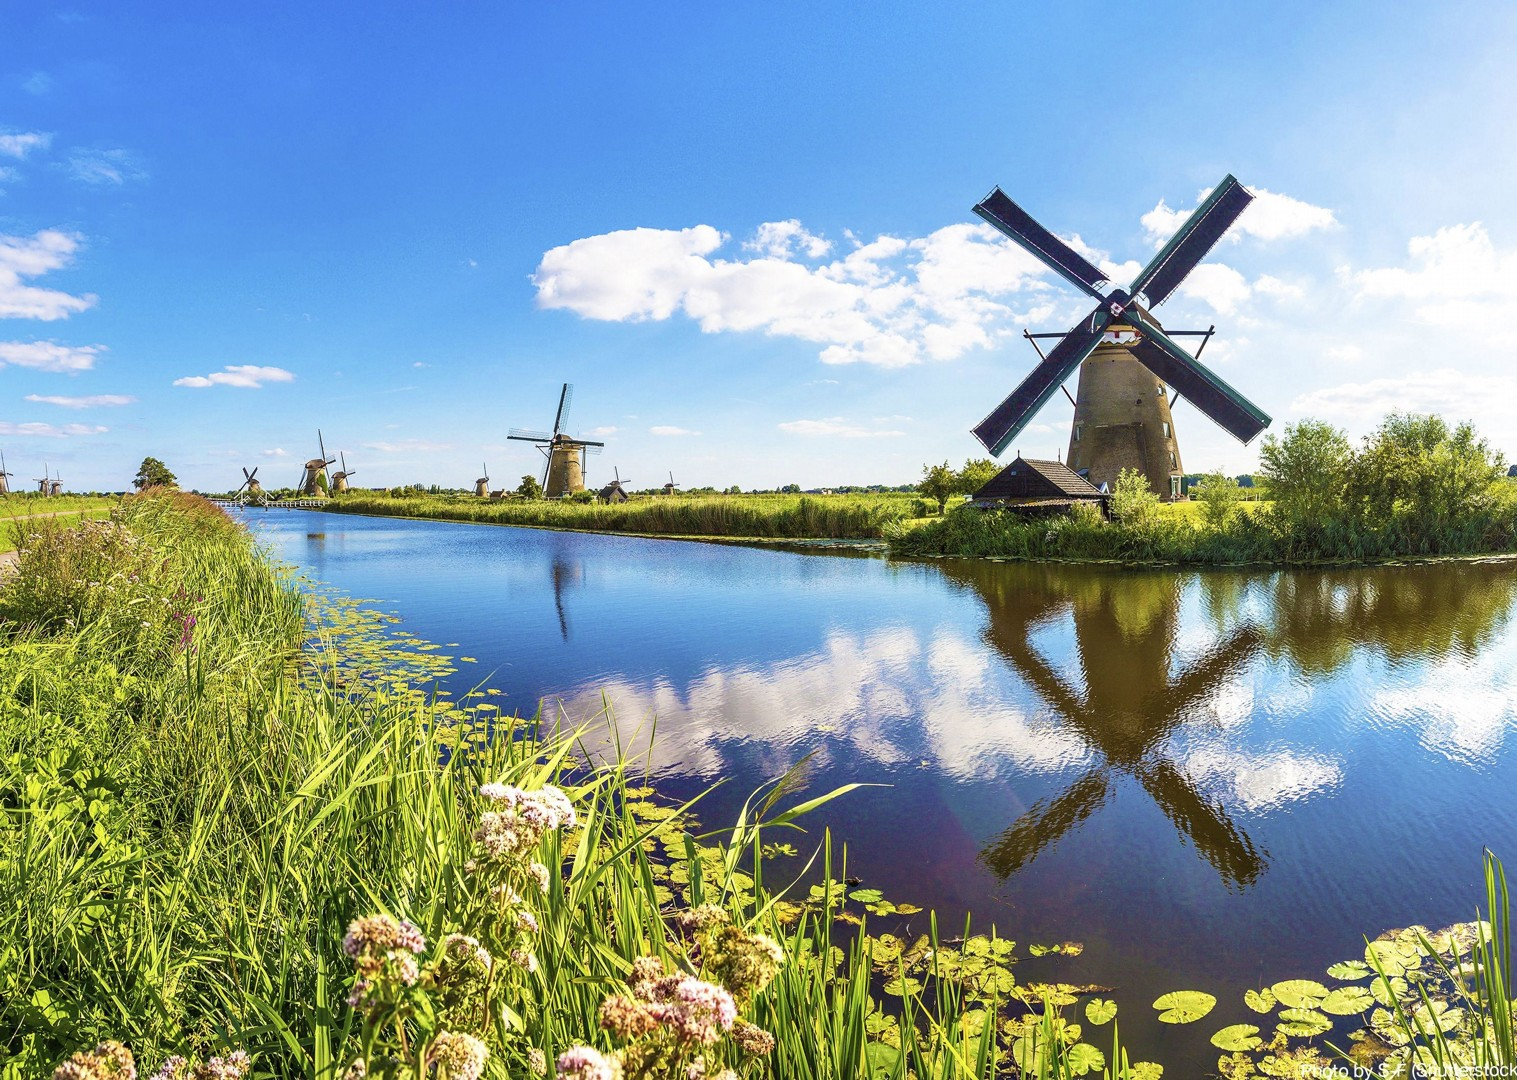 windmills-culture-holland-boat-tour-cycling-holiday-saddle-skedaddle.jpg - Holland and Belgium - Bruges to Amsterdam - Bike and Barge Holiday - Leisure Cycling